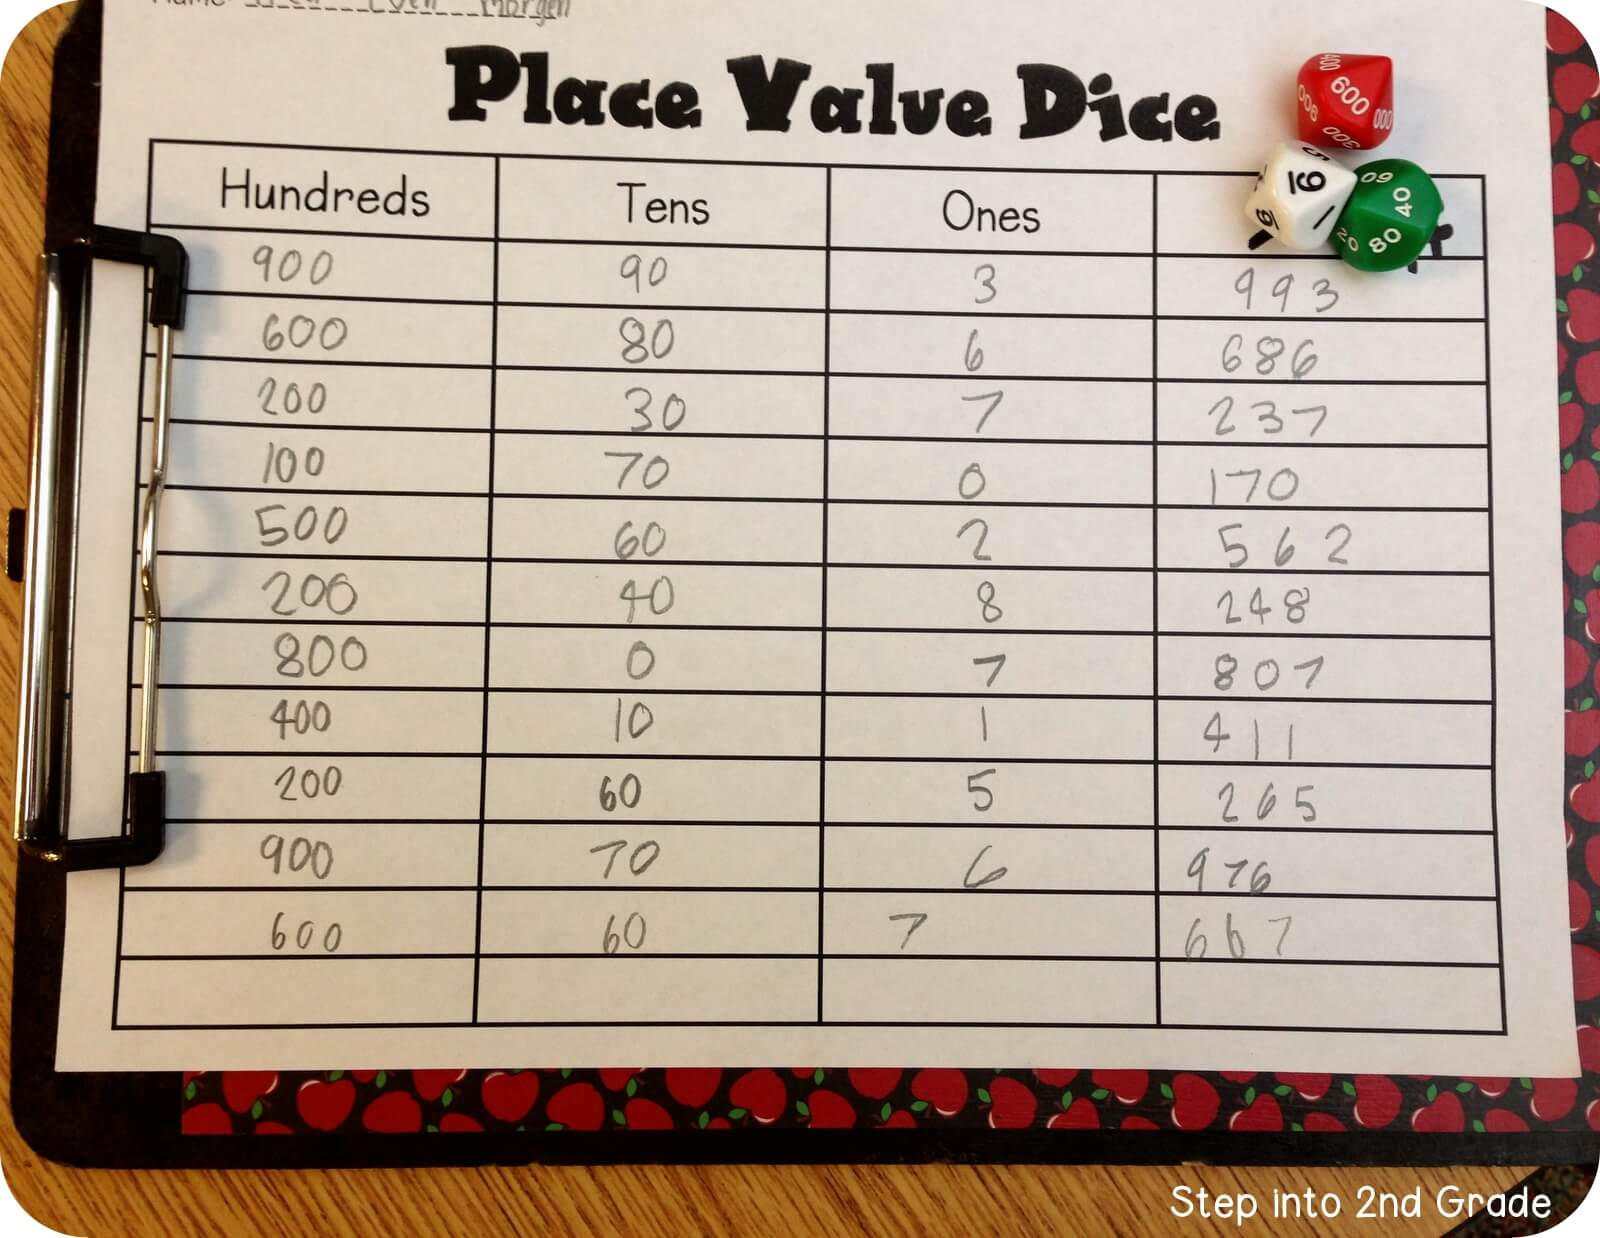 More Mudge And Place Value